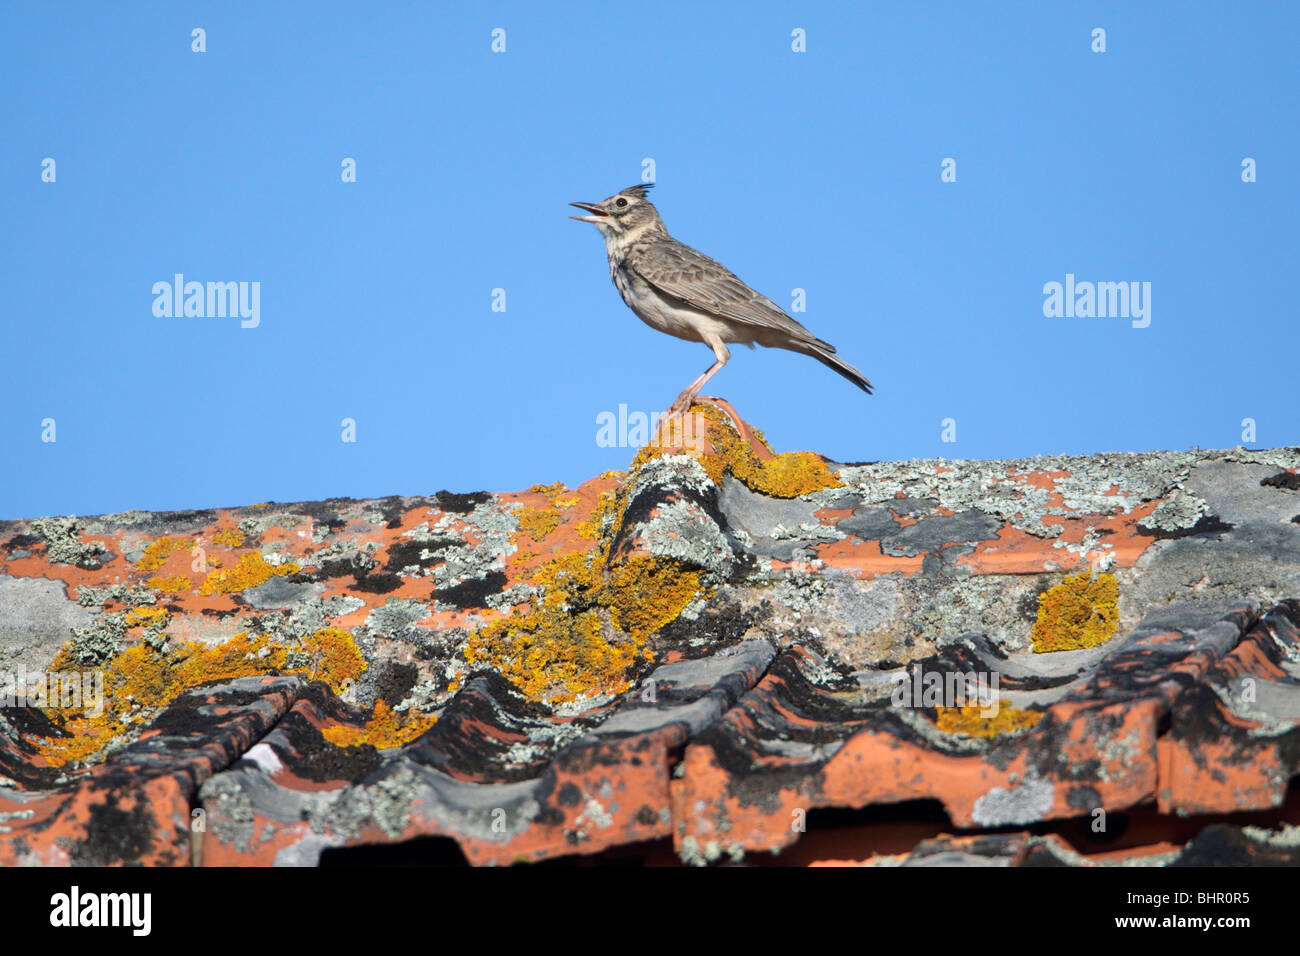 Crested Lark (Galerida cristata), perched on roof singing, Portugal Stock Photo